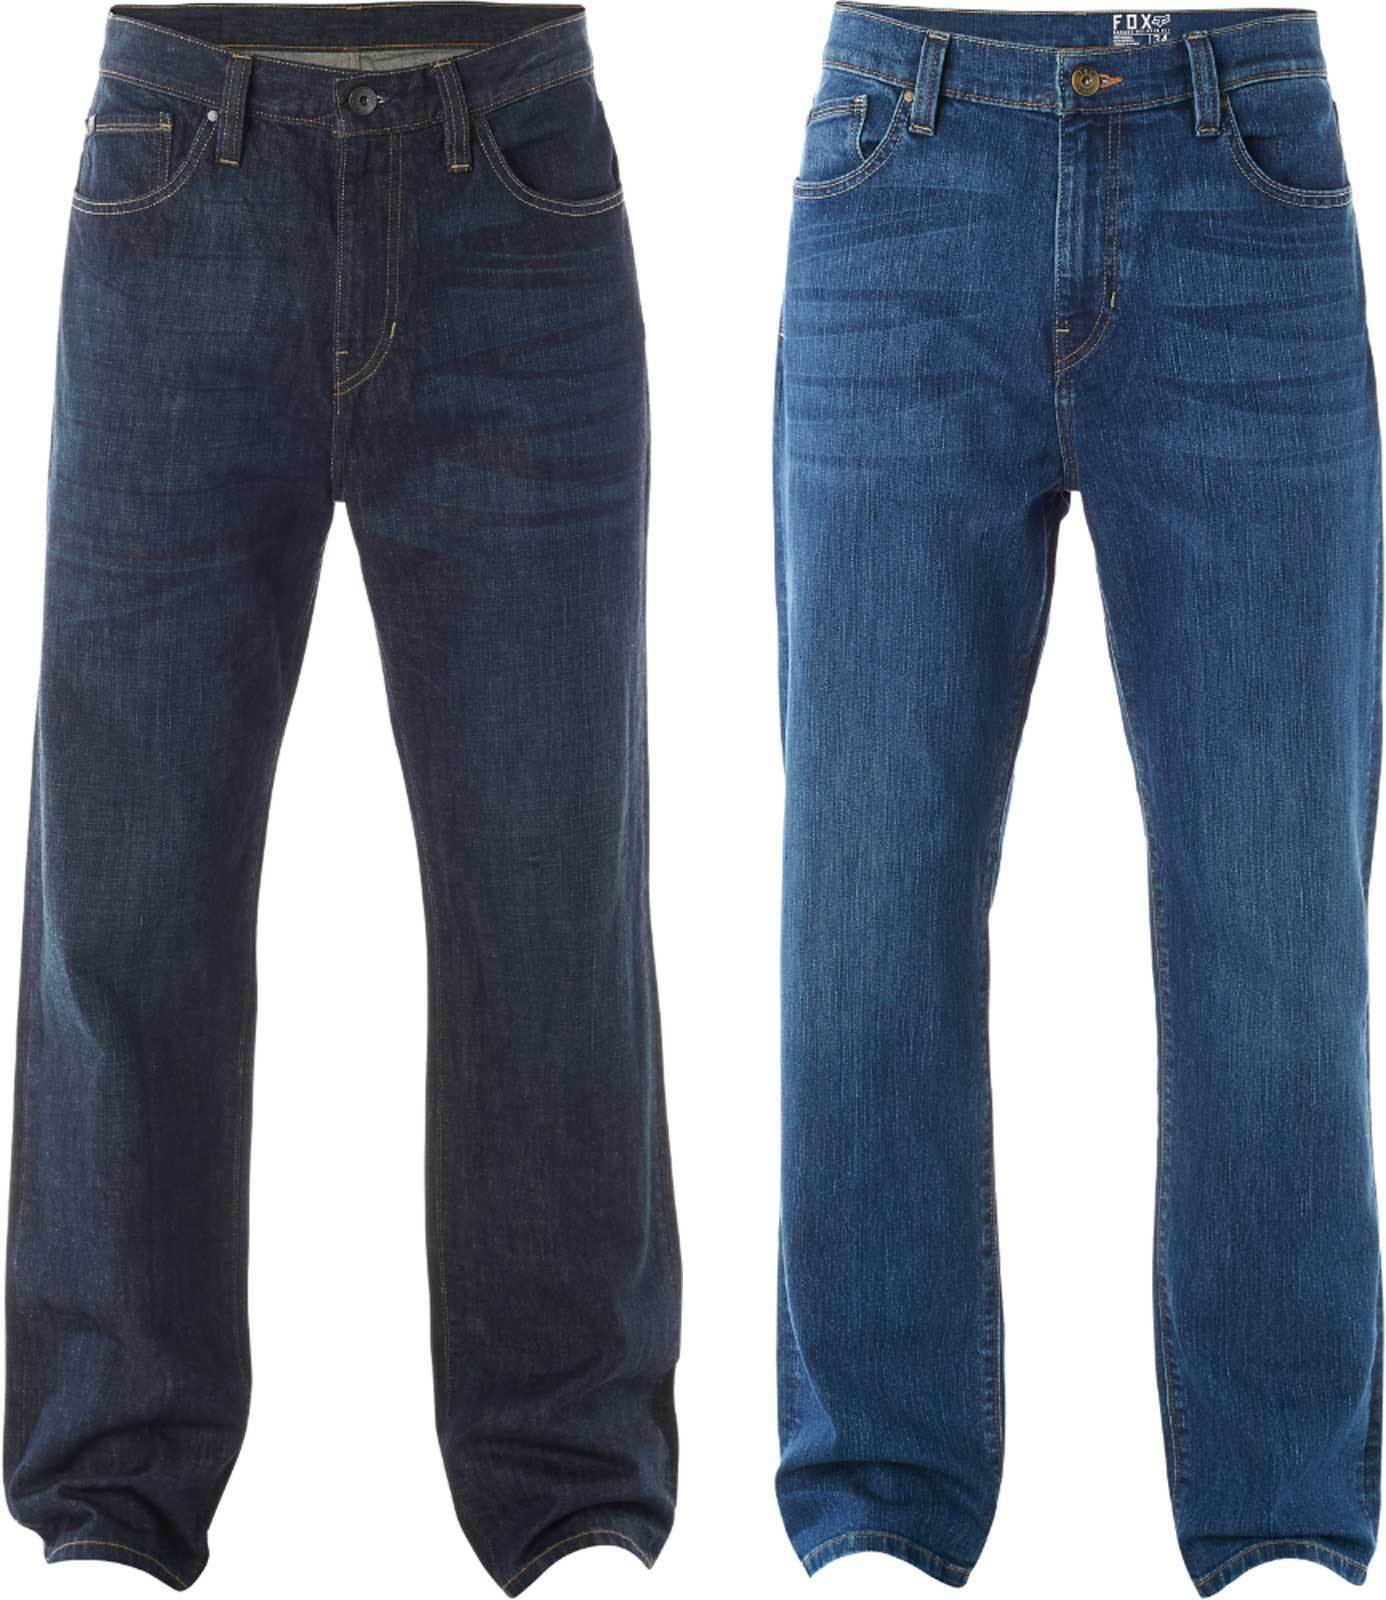 Fox Racing Garage Jeans - Mens Relaxed Fit Rinsed Stonewashed Mid-Rise